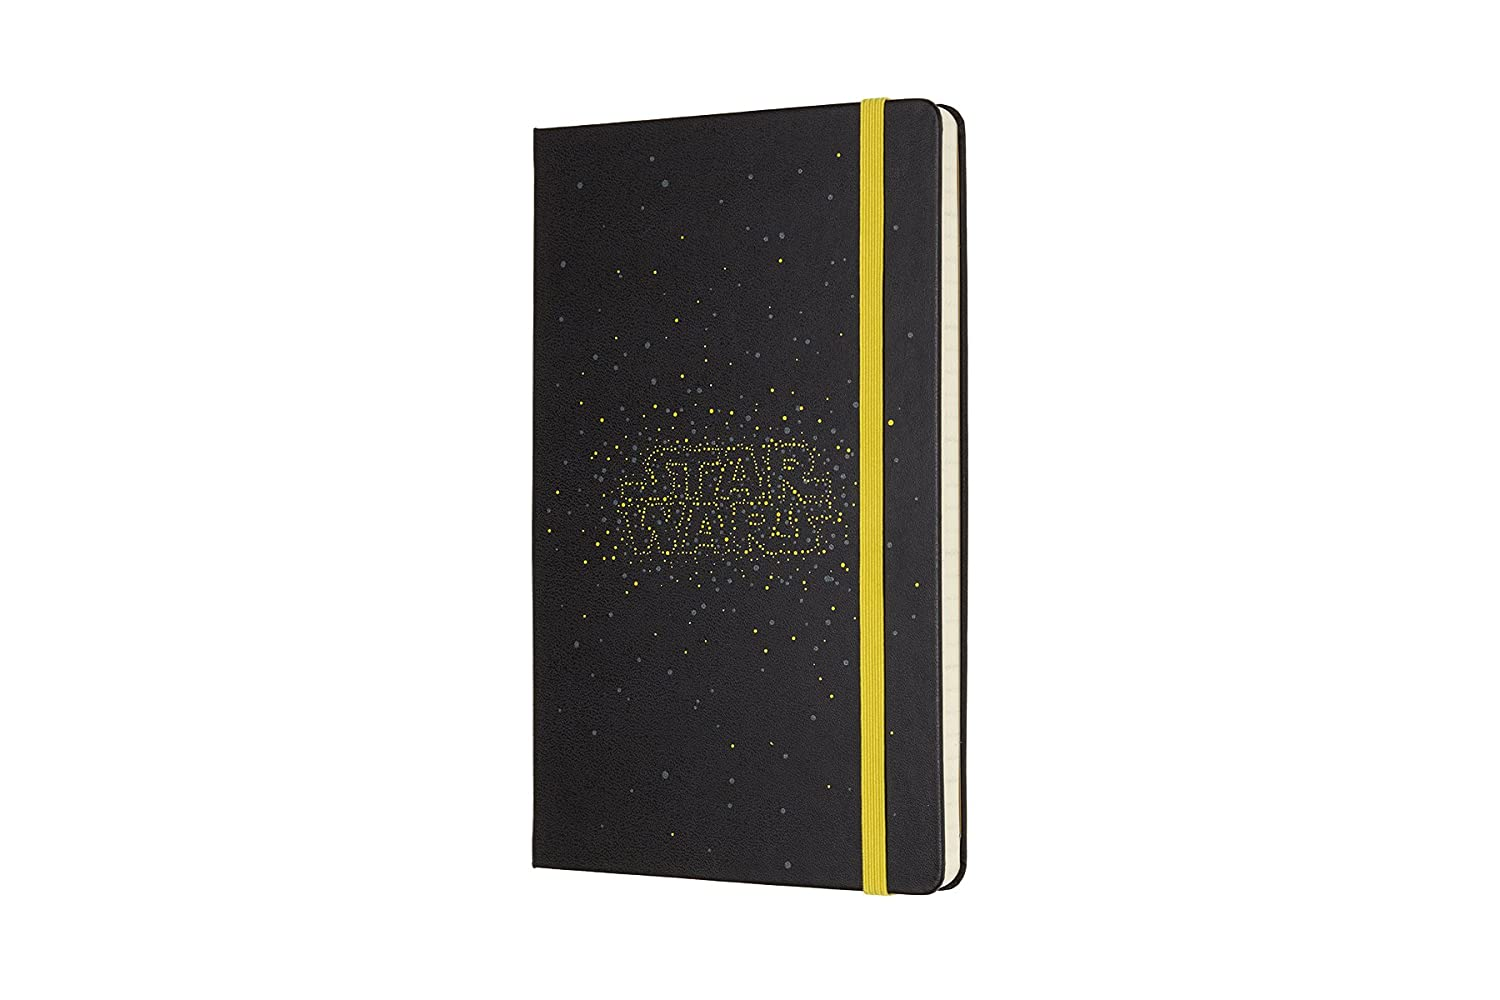 Moleskine Limited Edition Star Wars 18 Month 2017-2018 Weekly Planner, Hard Cover, Large (5